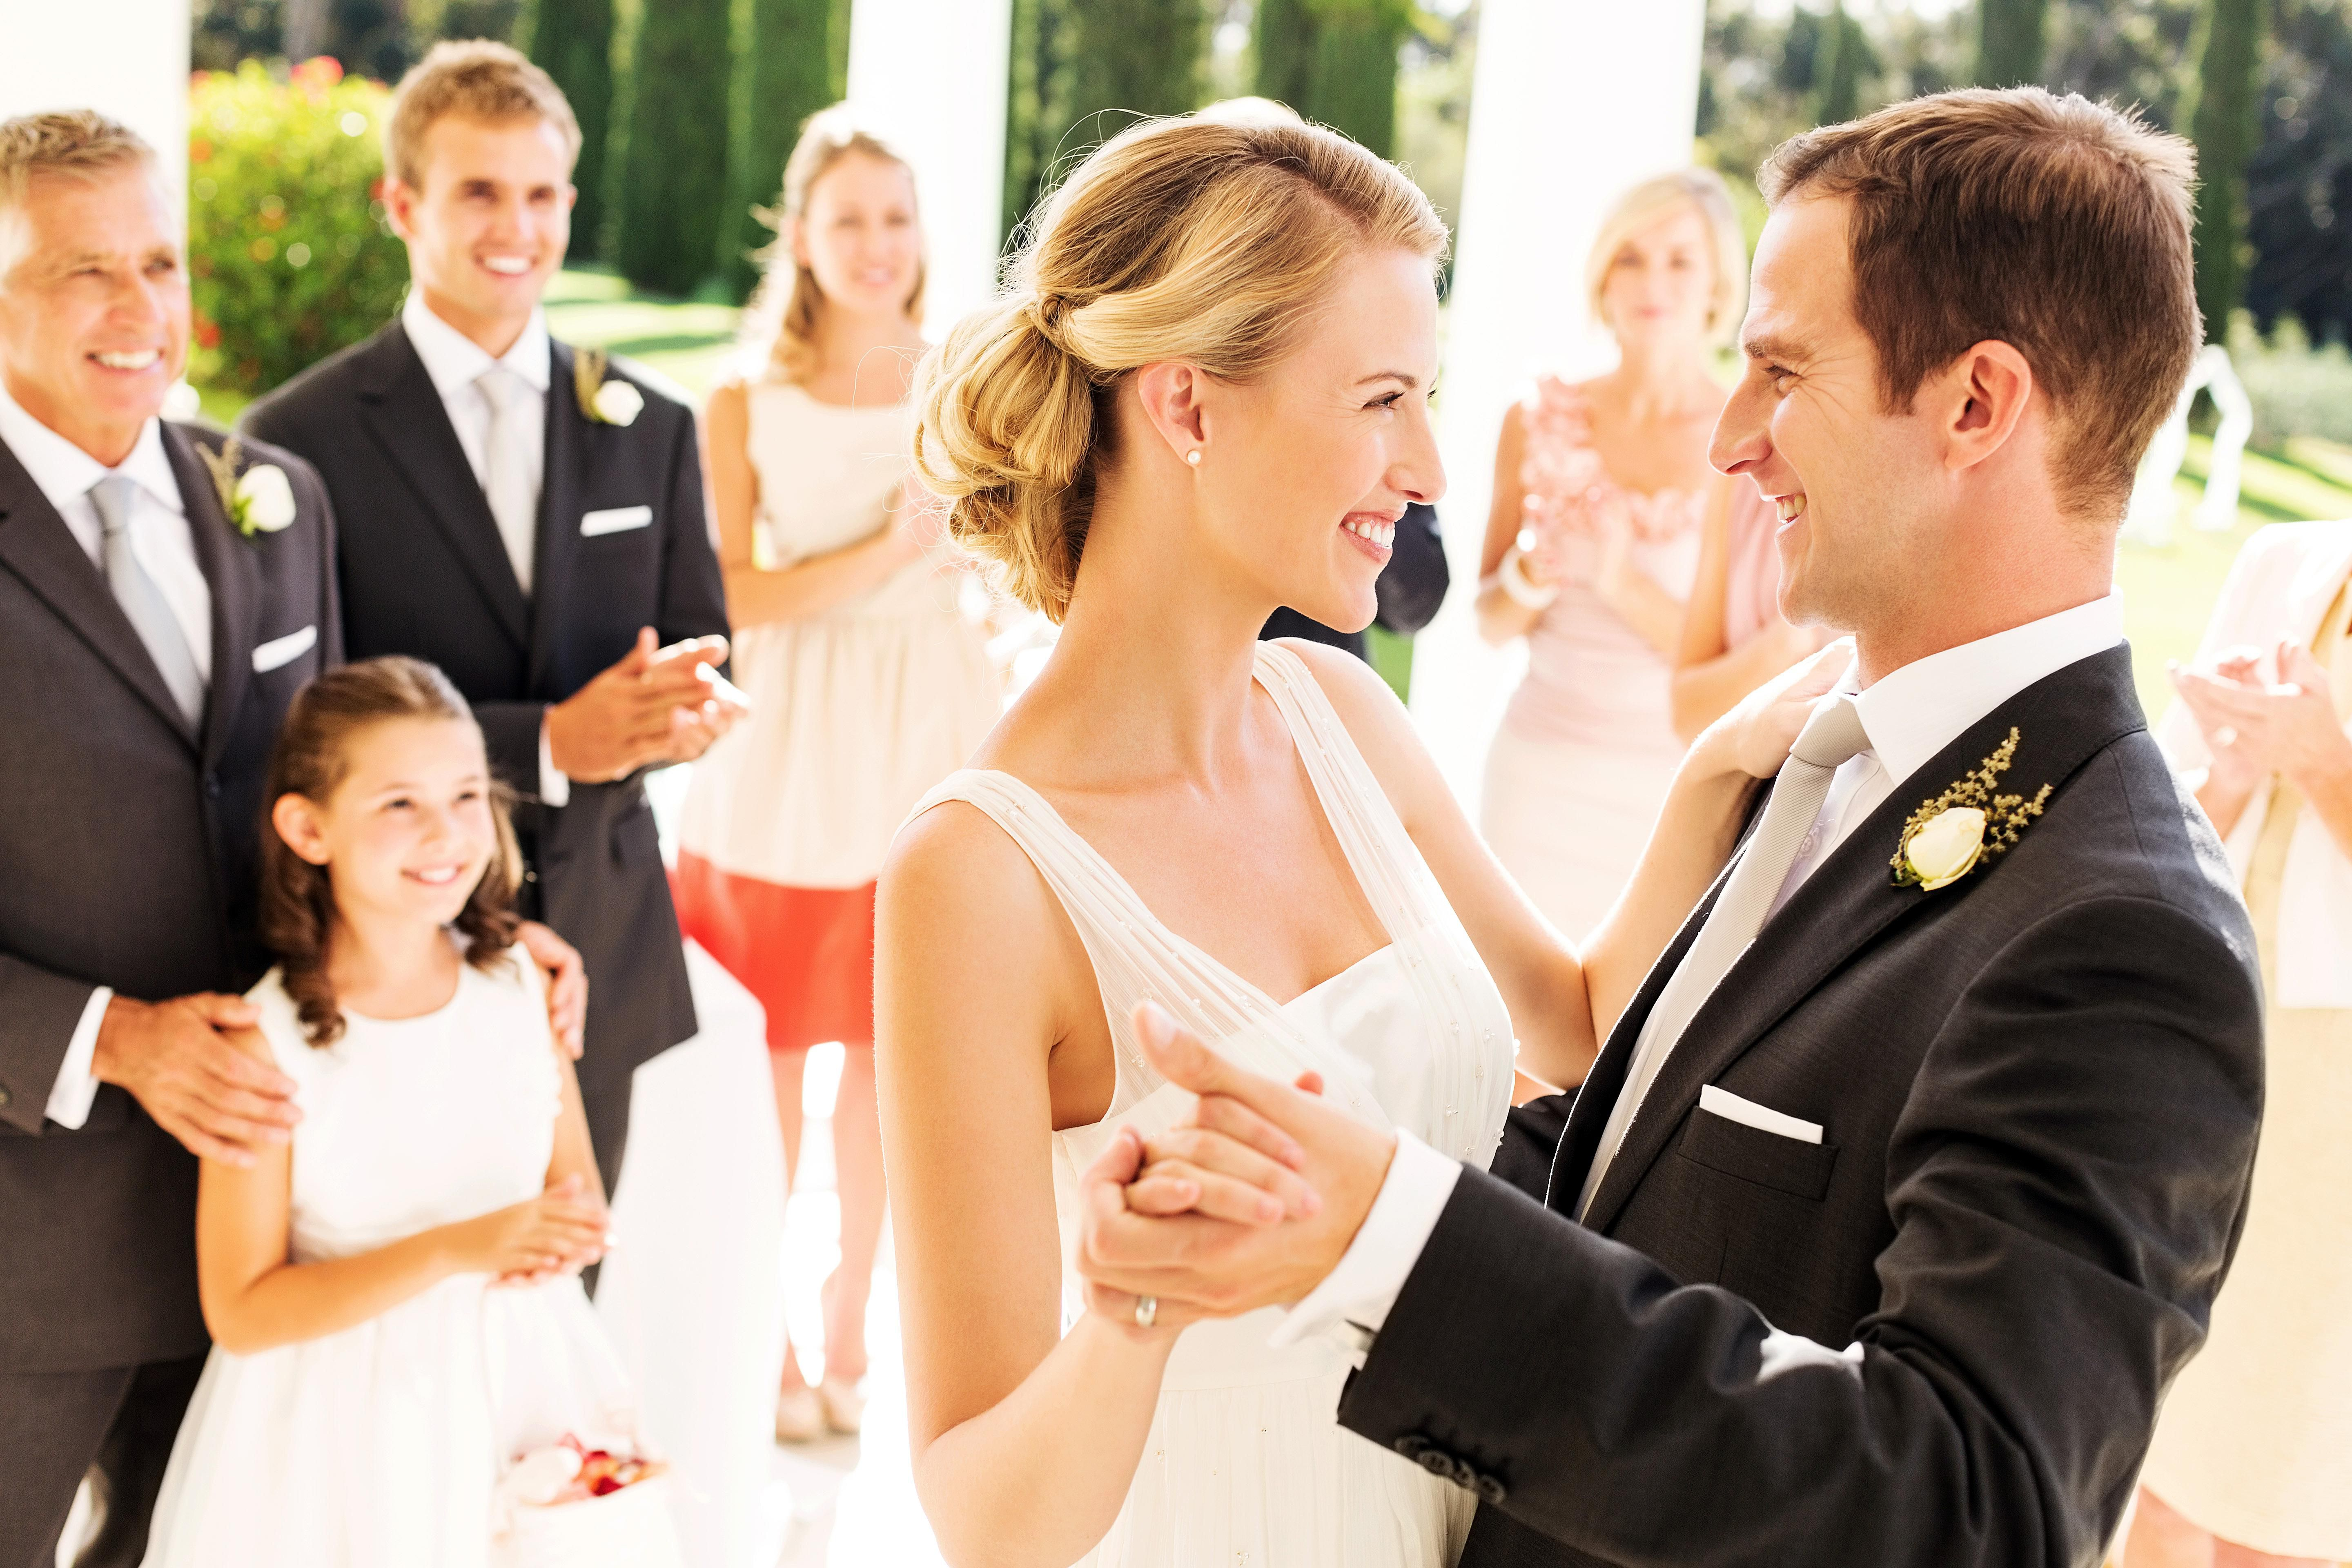 Tips And Guidelines For The Wedding Dance